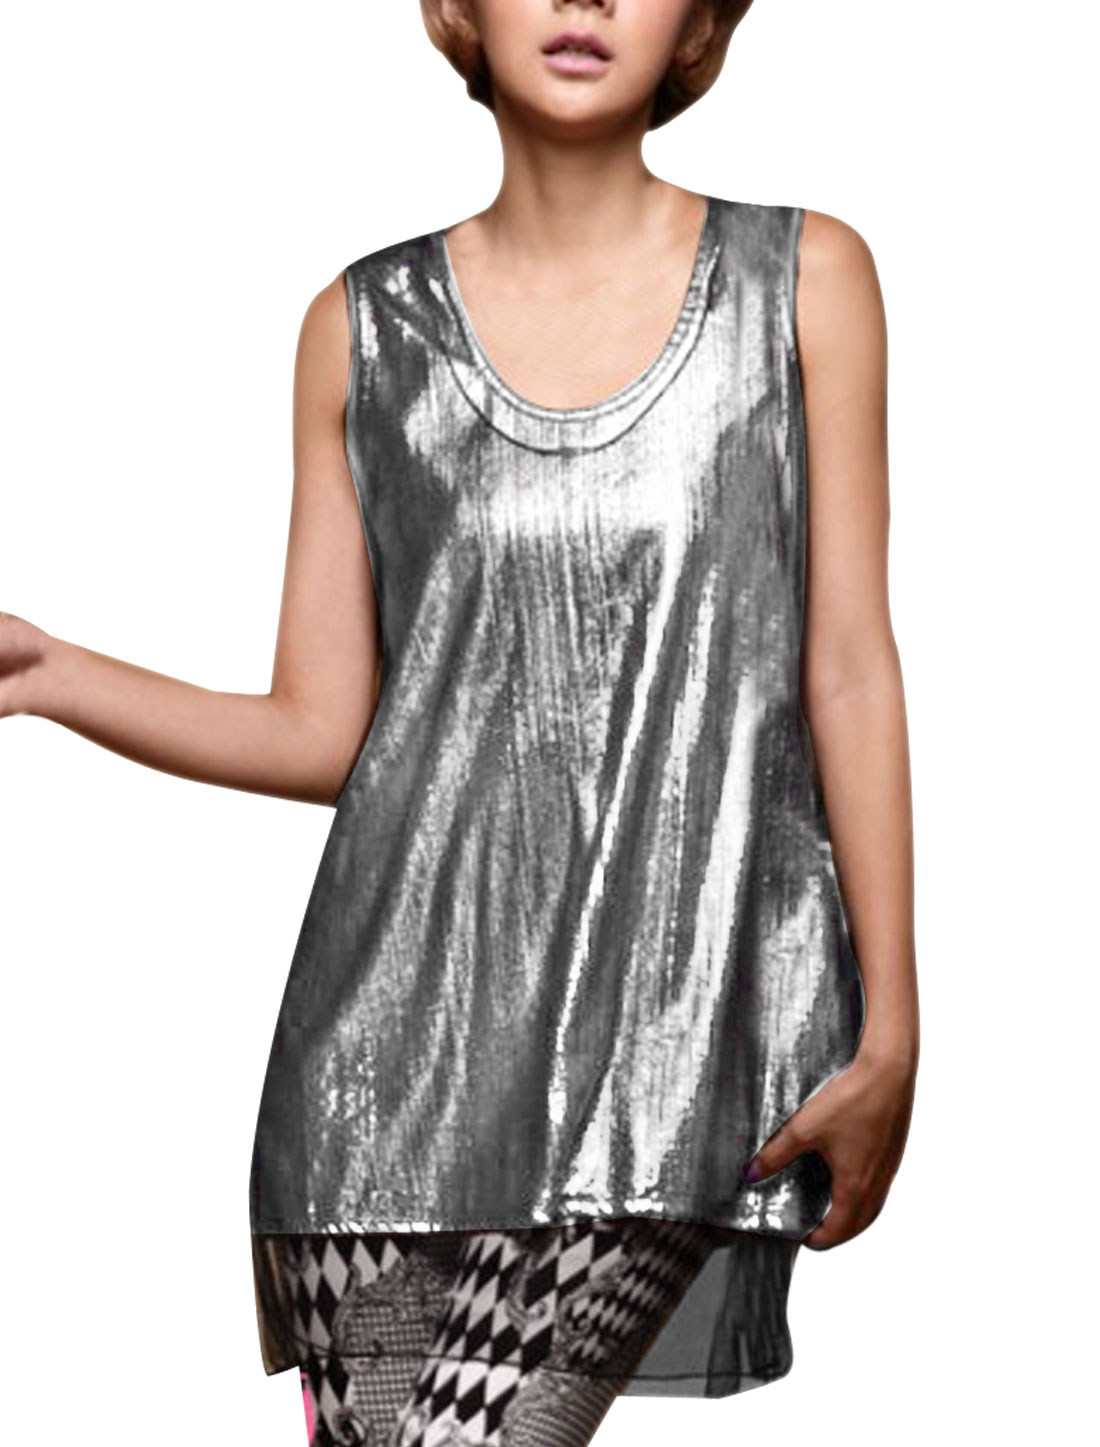 Women's Round Neck Two Pieces Stretchy Metallic PVC Mesh Silver Tone XS Tank Top